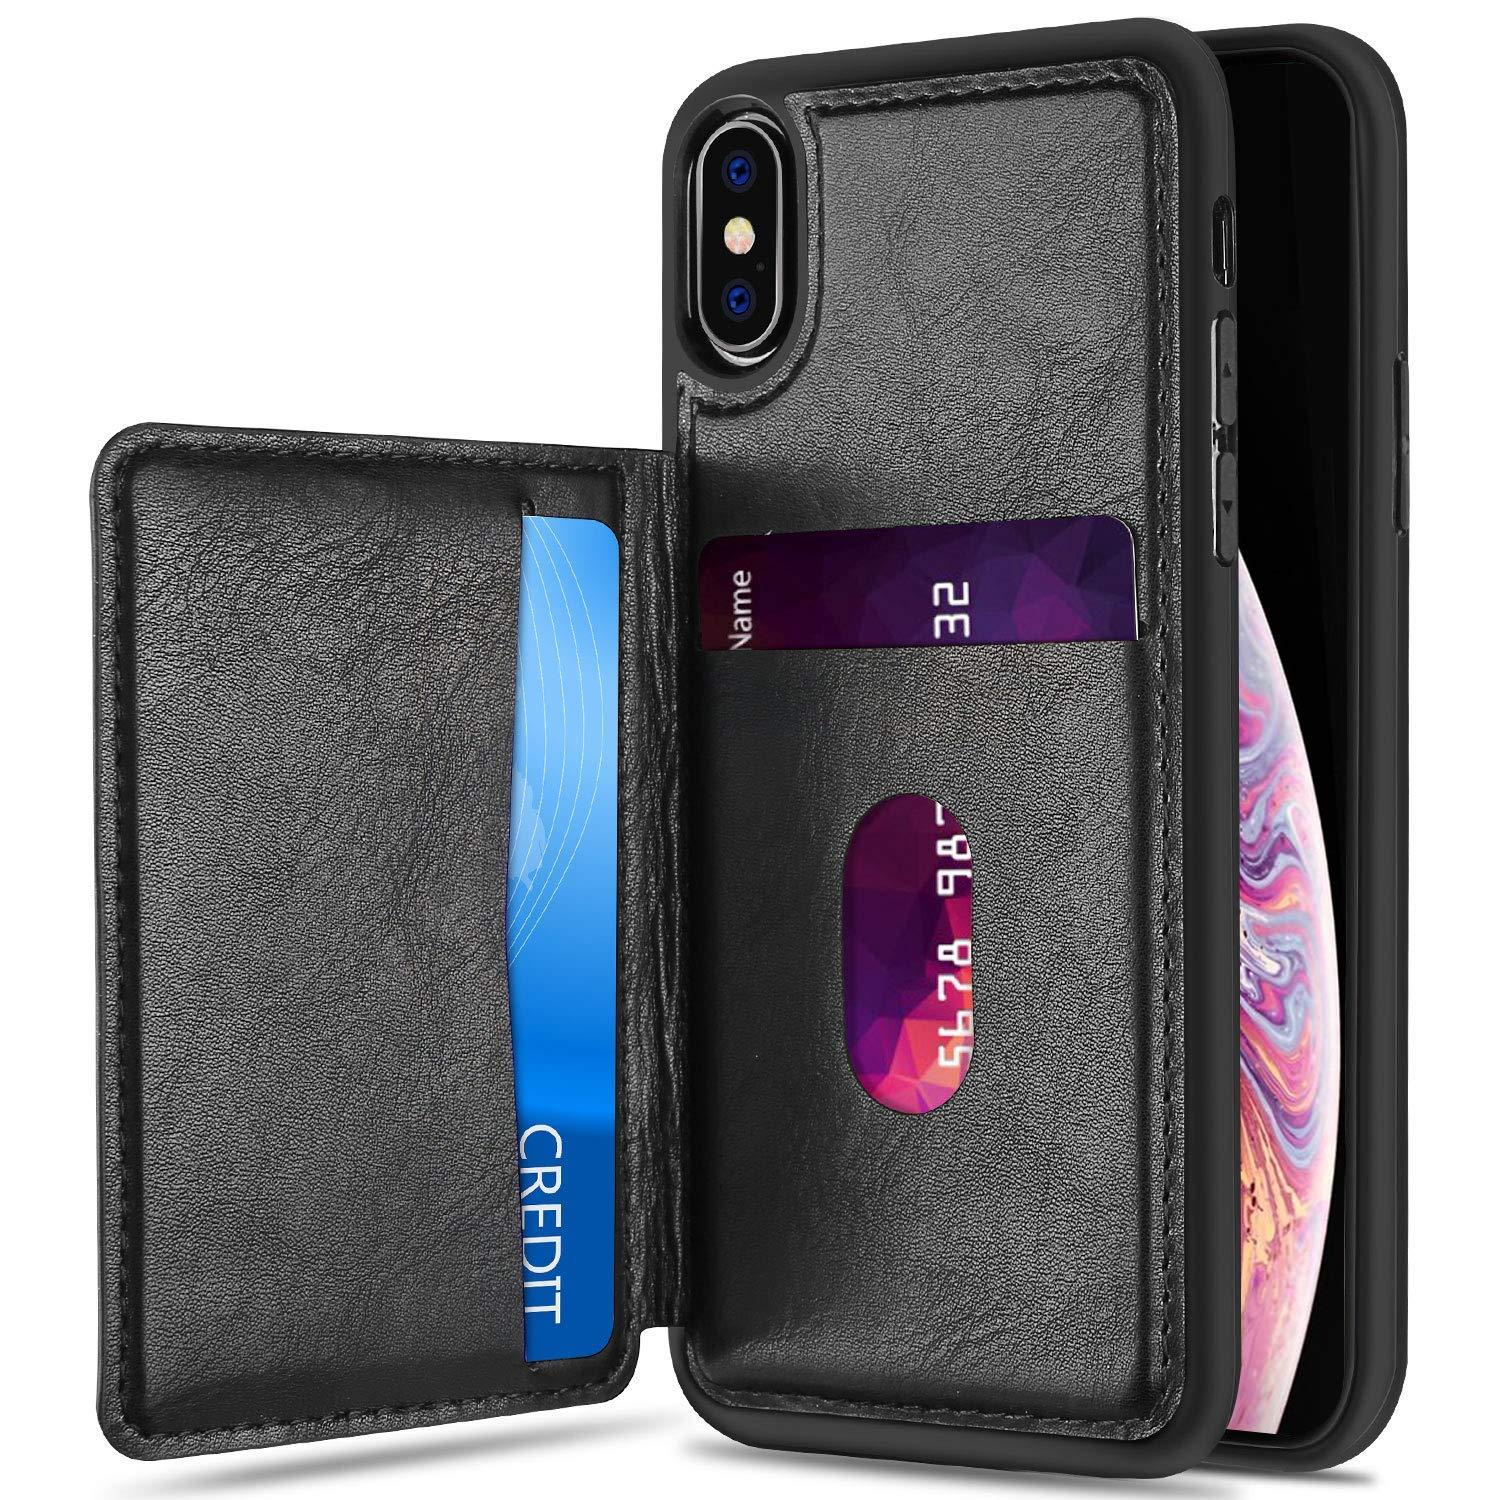 ProCase Wallet Case for iPhone XS Max, Slim Flip Kickstand Leather Case Minimalist Hybrid Stand